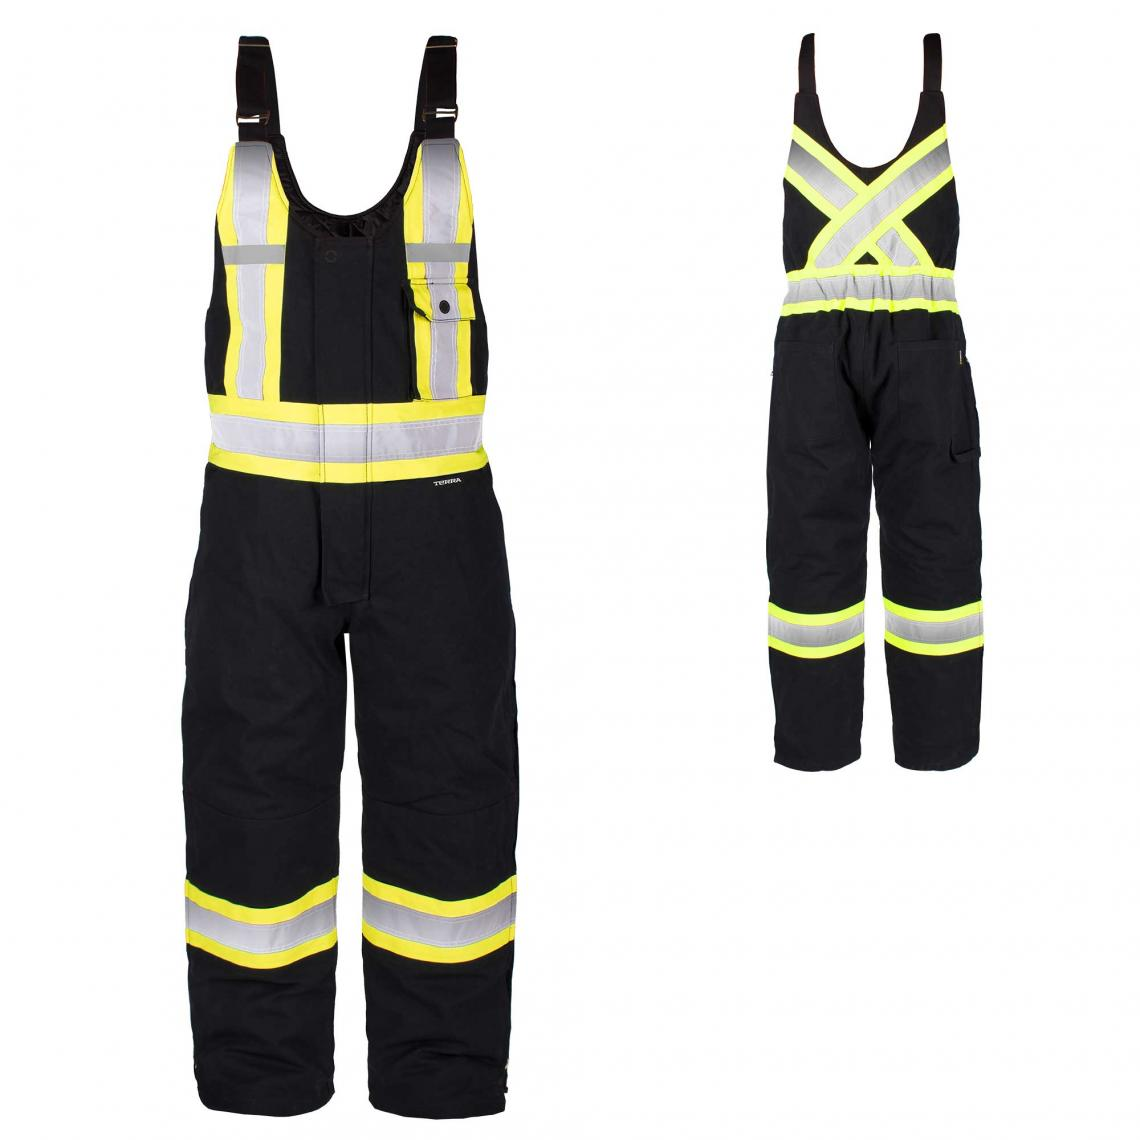 Terra Hi-Vis Canvas Bib Overalls | Black | Limited Size Selection Hi Vis Work Wear - Cleanflow